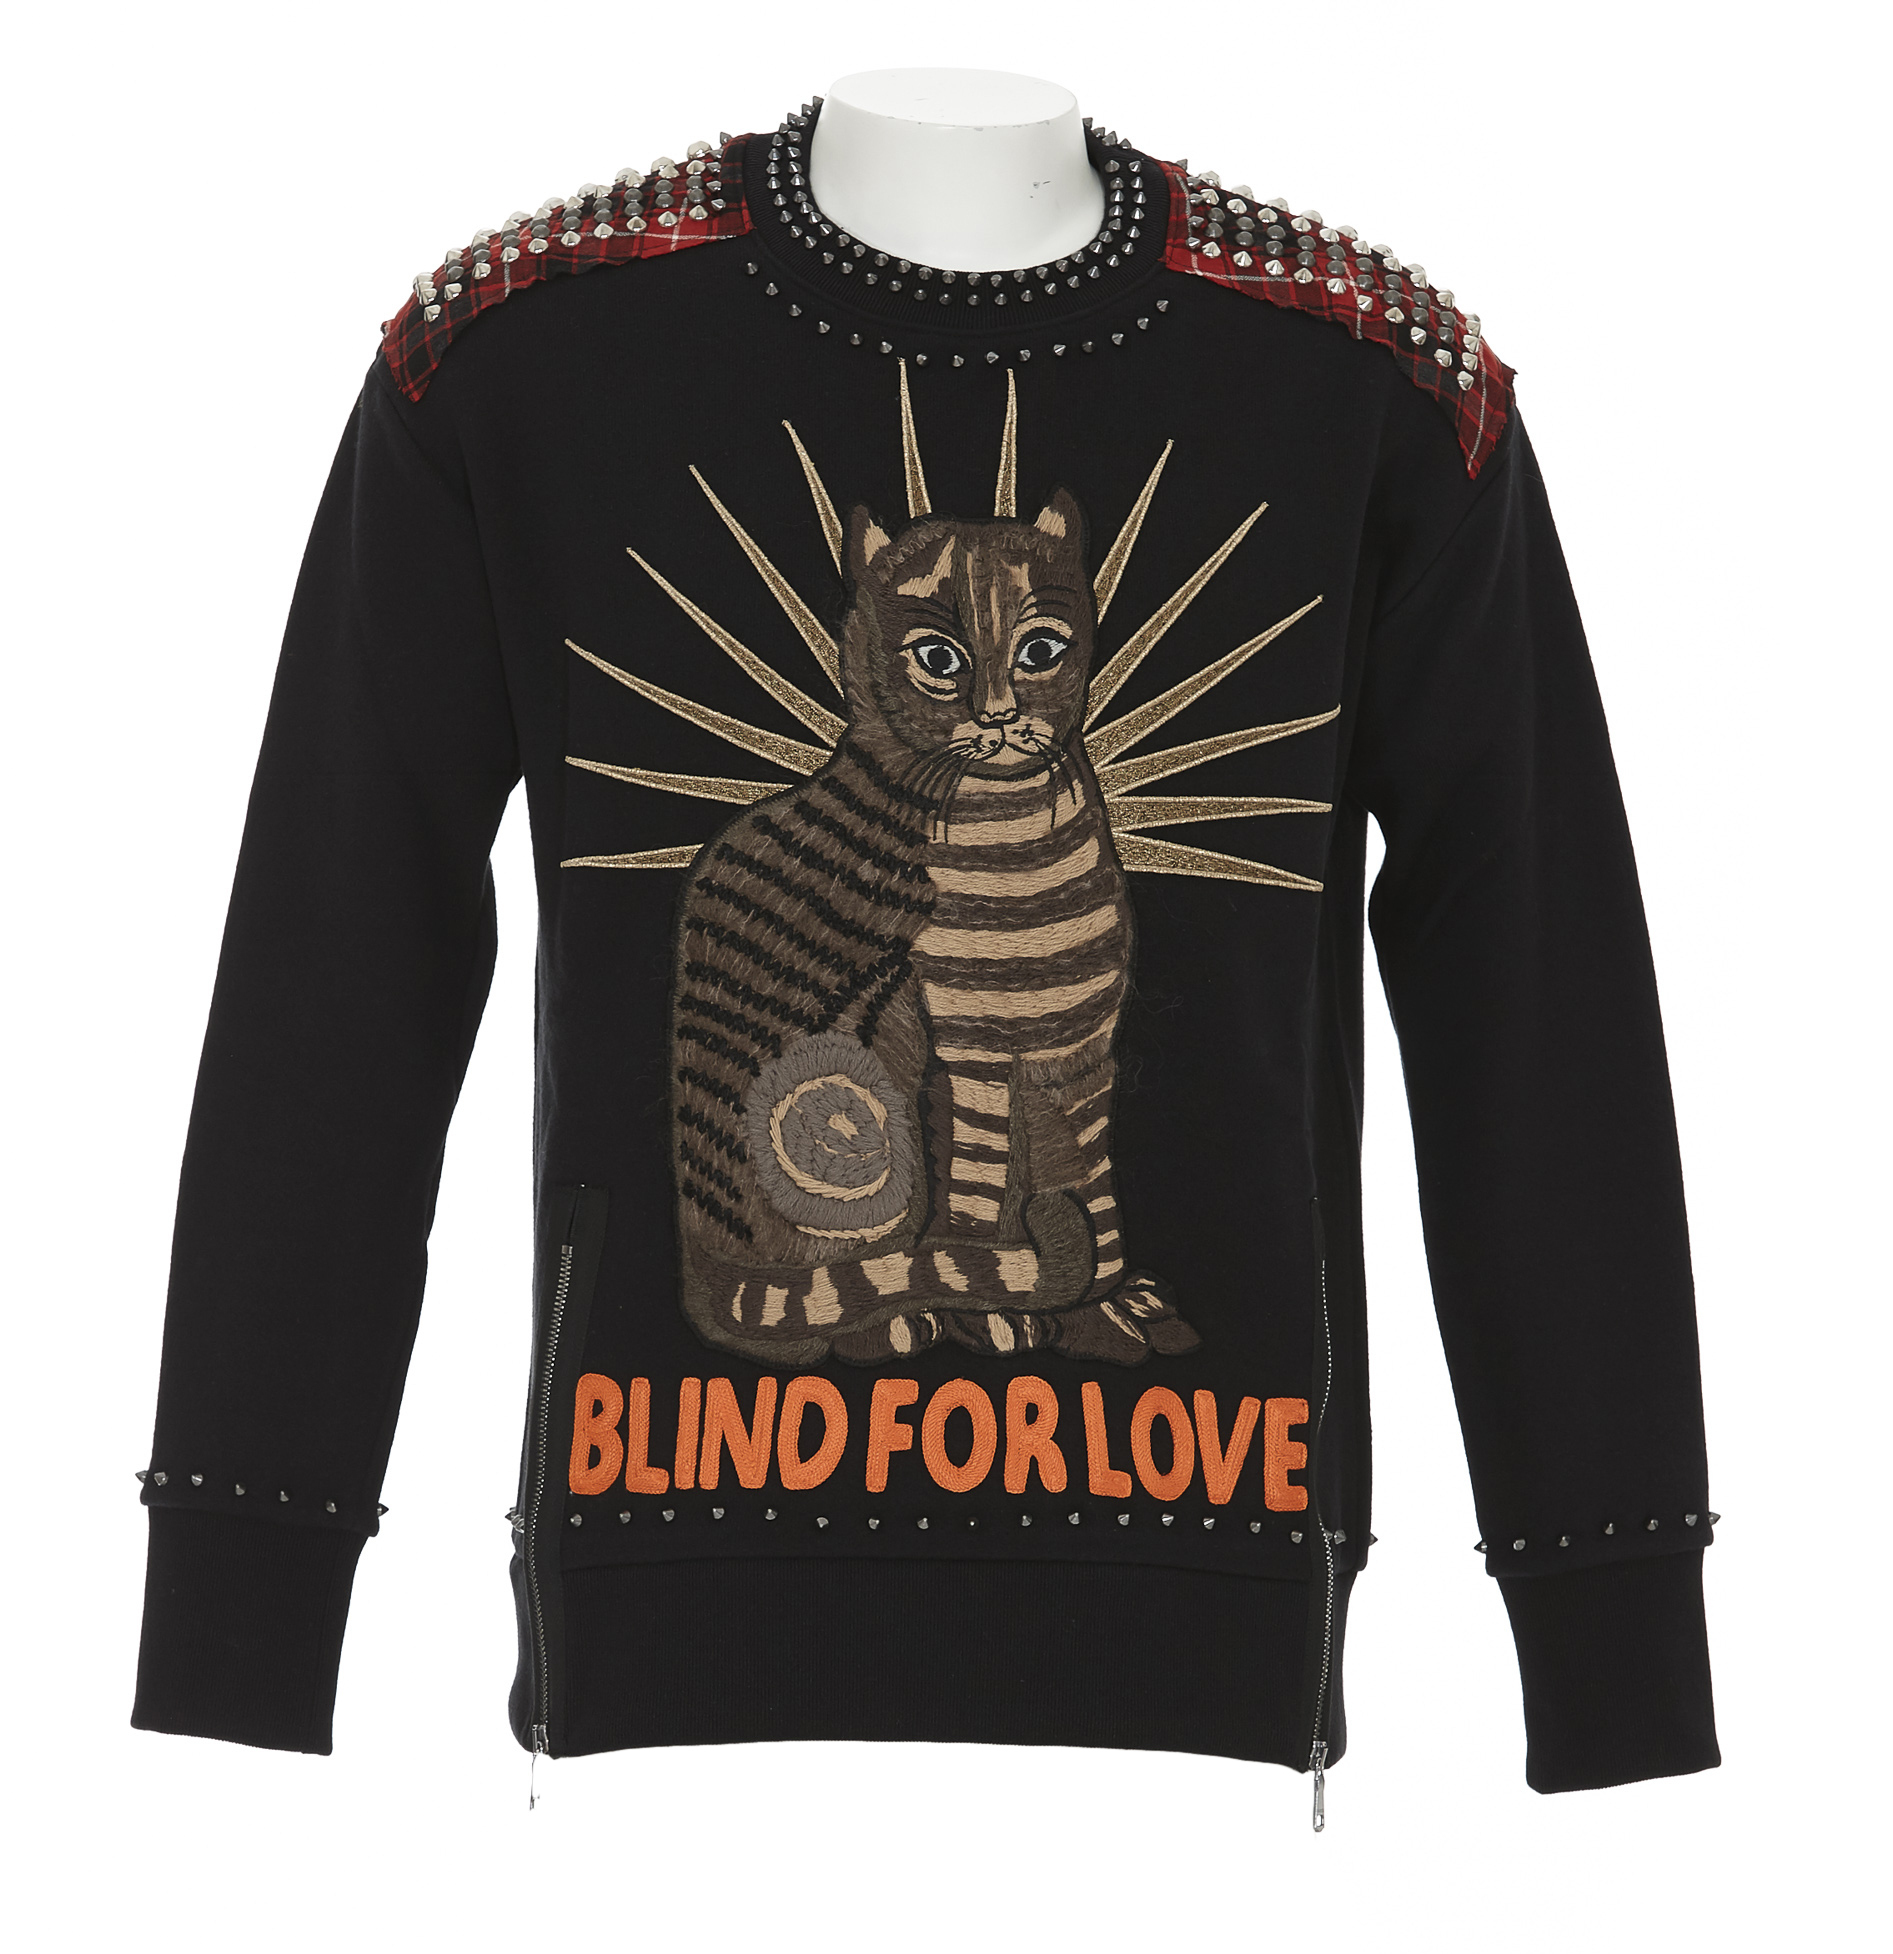 VIP SALE!国内発送☆ GUCCI Blind for love コットンスェット